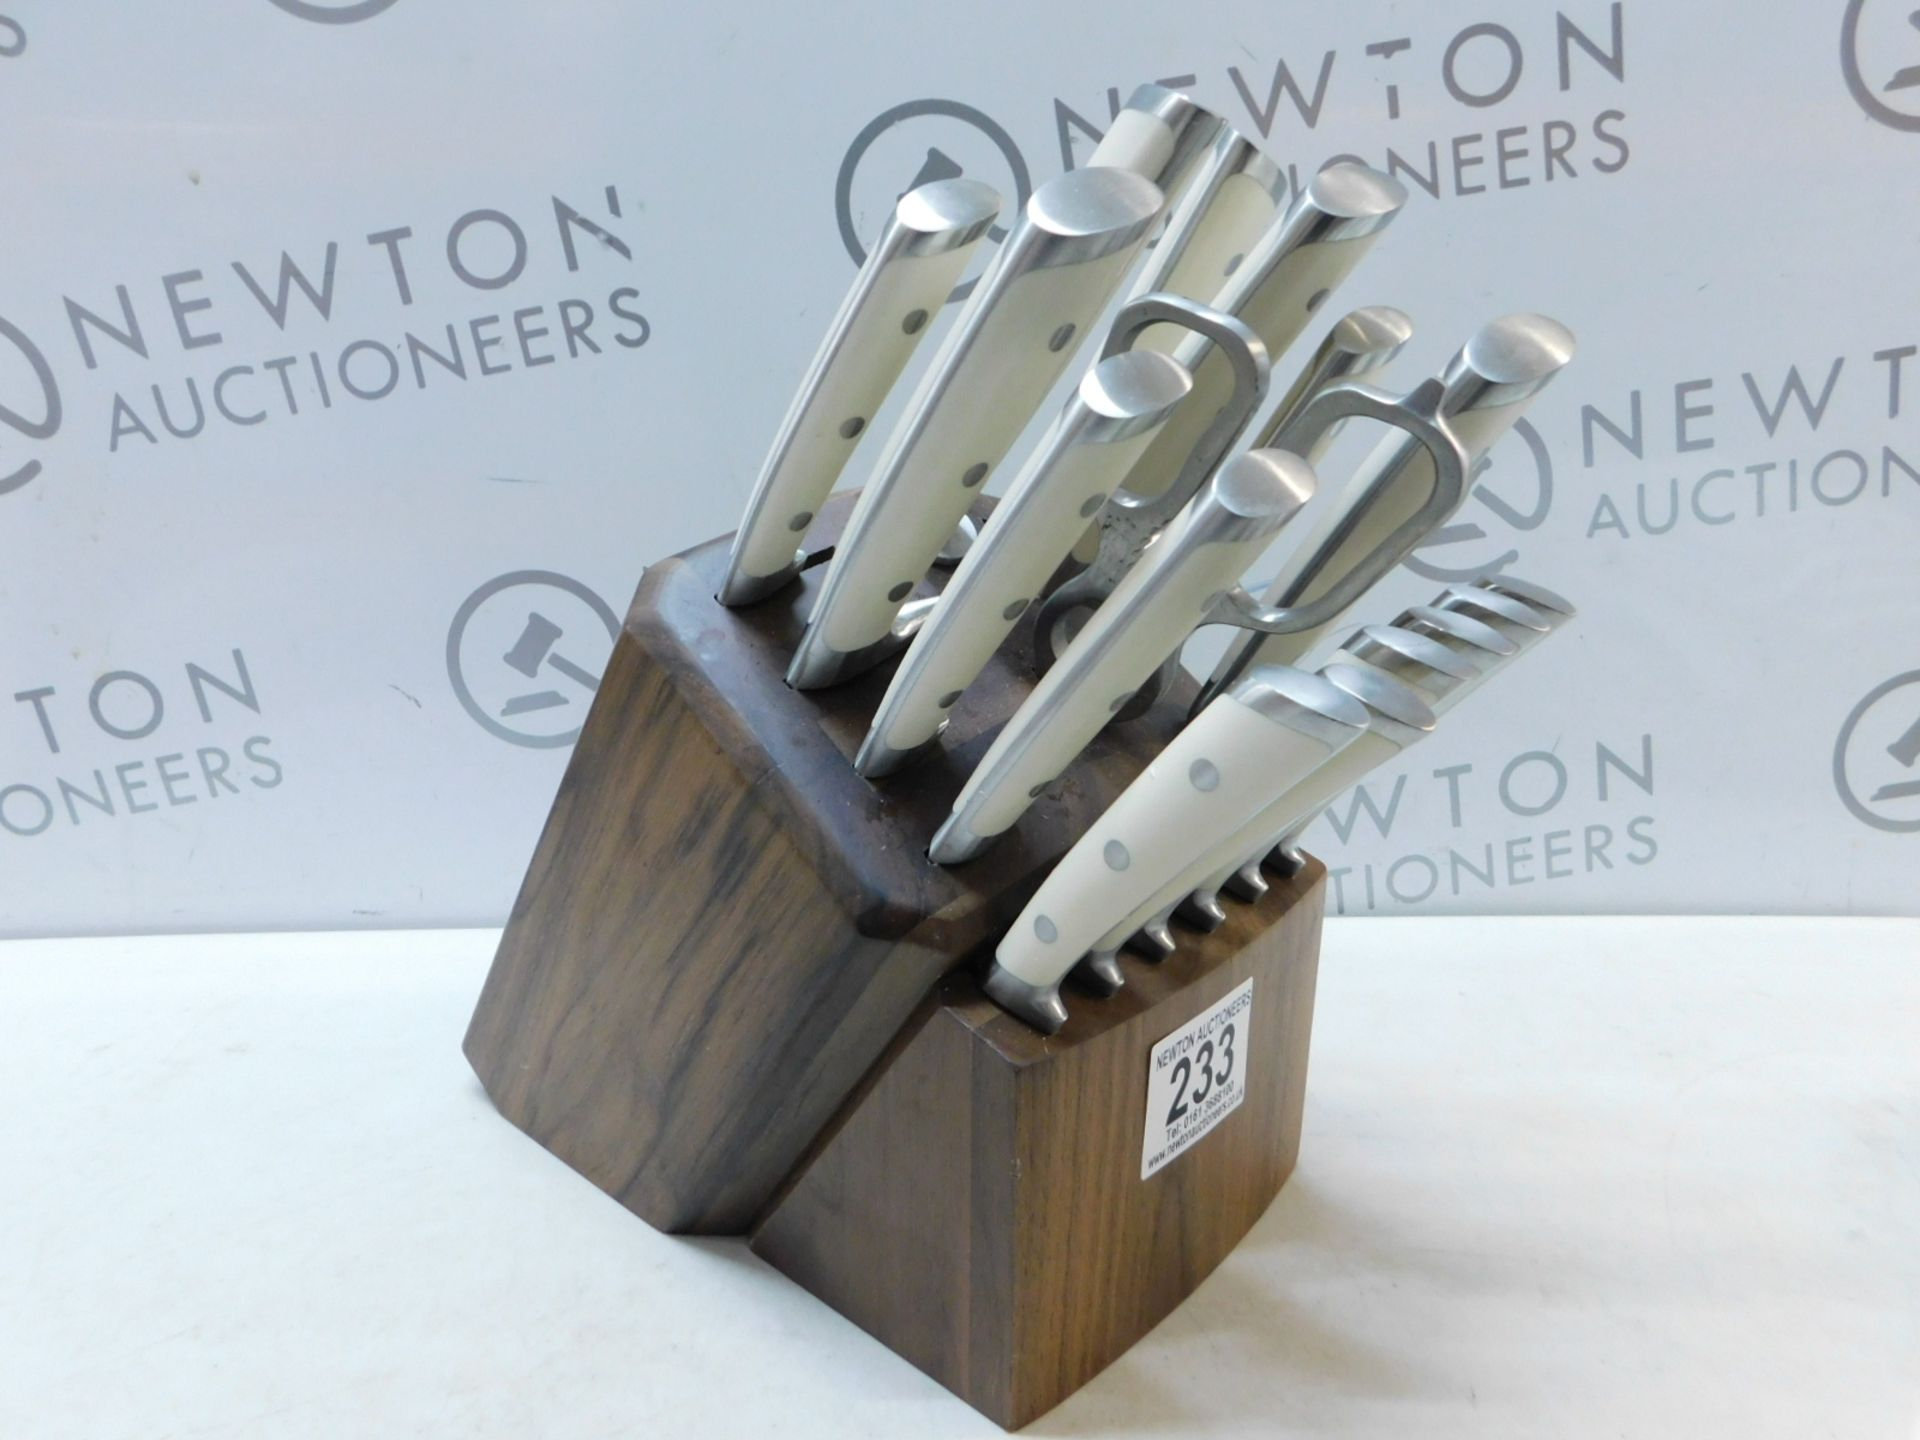 Lot 233 - 1 CANGSHAN S1 SERIES 17-PIECE FORGED GERMAN STEEL KNIFE SET RRP £279.99